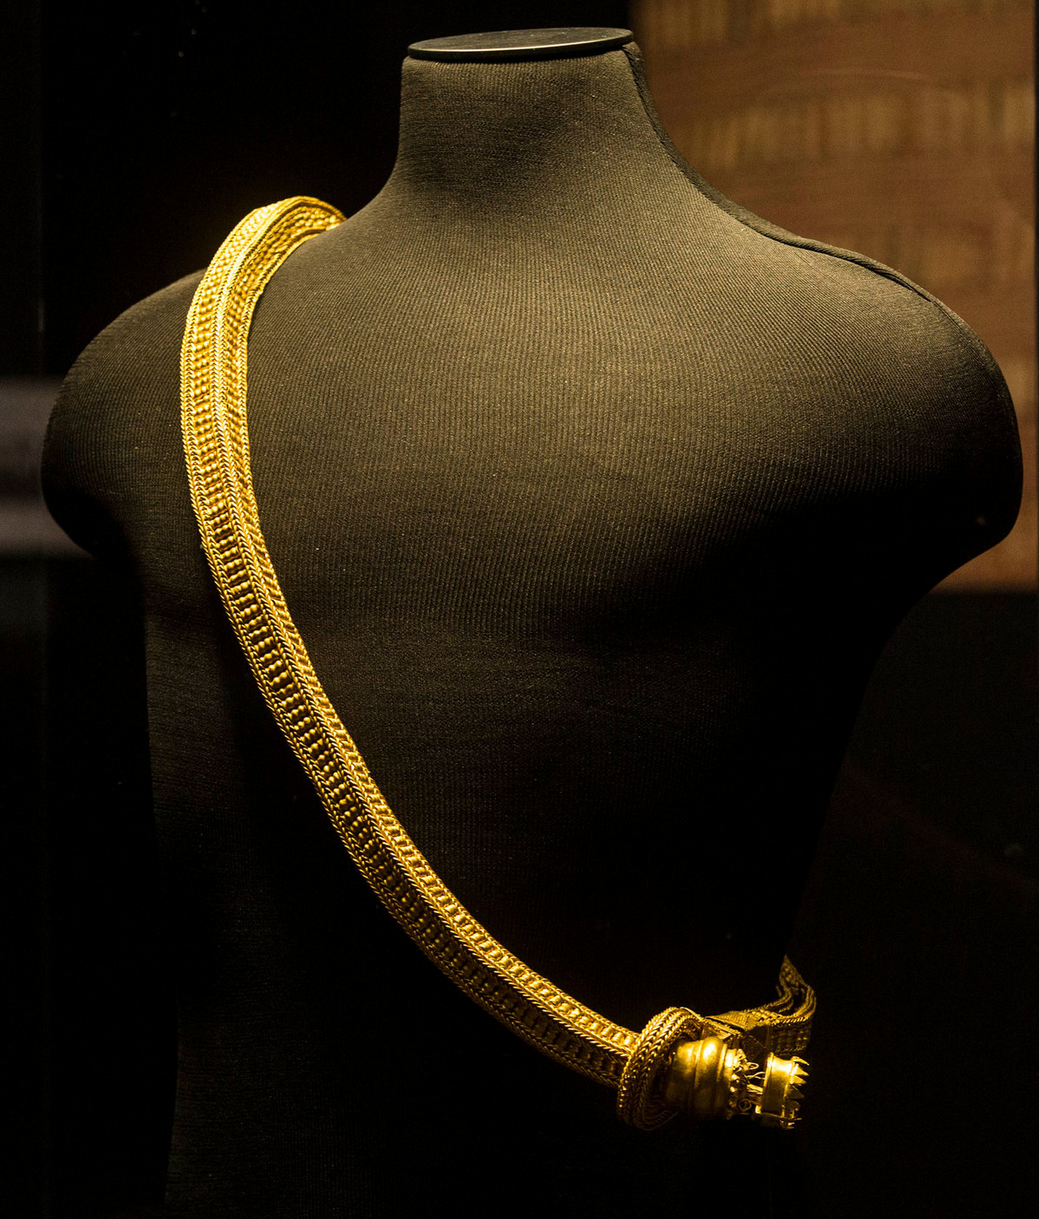 """A sash or caste, gold cord, from the exhibit """"Philippine Gold: Treasures of Forgotten Kingdoms"""" / Asia Society New York"""